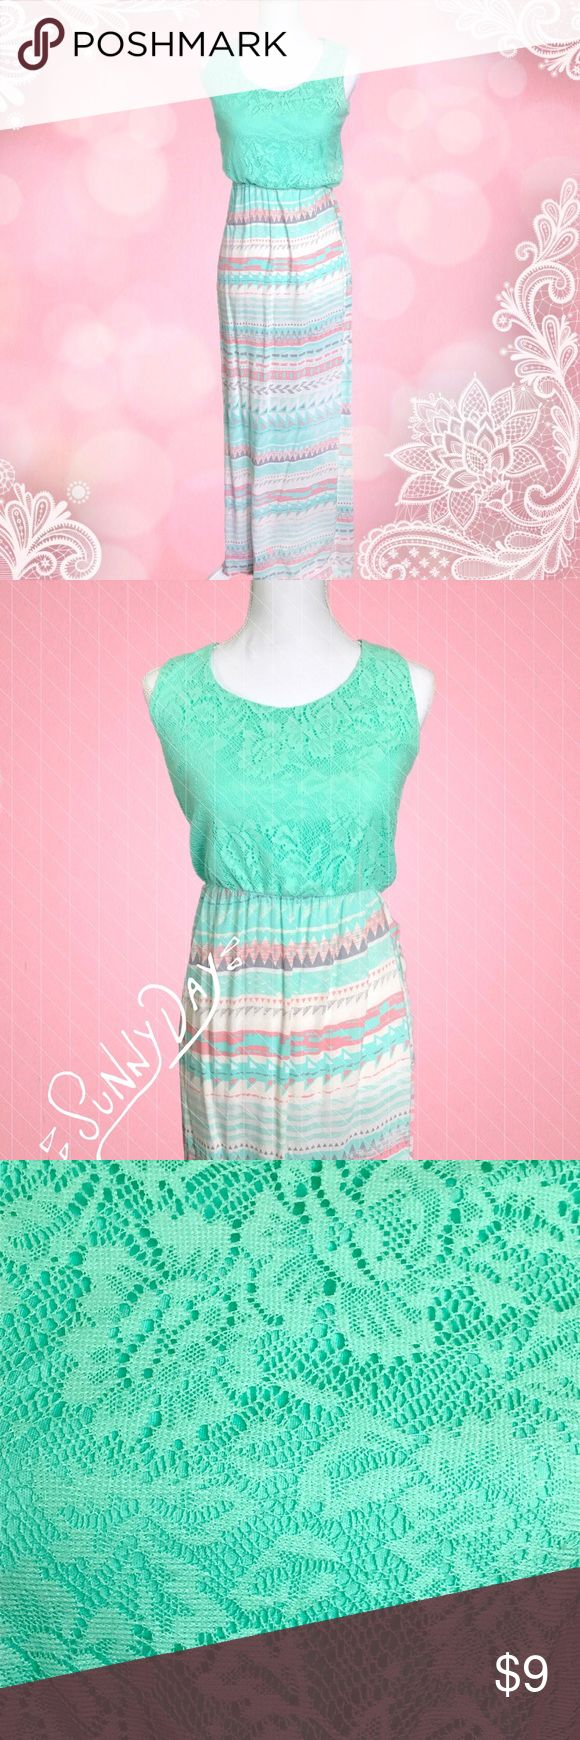 """✨ NEW✨ Stylish Aztec Maxi Dress 👗 💕 ~  Beautifully colored Aztec Maxi dress ~  Teal, pink, white, & light gray skirt ~  Thin comfortable skirt, semi-sheer in direct sunlight ~  Pattern maybe slightly offset, easy fix if you can sew. Price reflects this ~  Size:Small ~  Measurements: From bottom of bust to end of dress approx. Is 41"""" From top shoulder seam is approx. 56""""  💕 Make me an Offer! 💕 🌟 Poshmark Fast Shipper, Top-Rated Seller & Top 10% Sharer 🌟 🚚  I ship within 2-3 business…"""